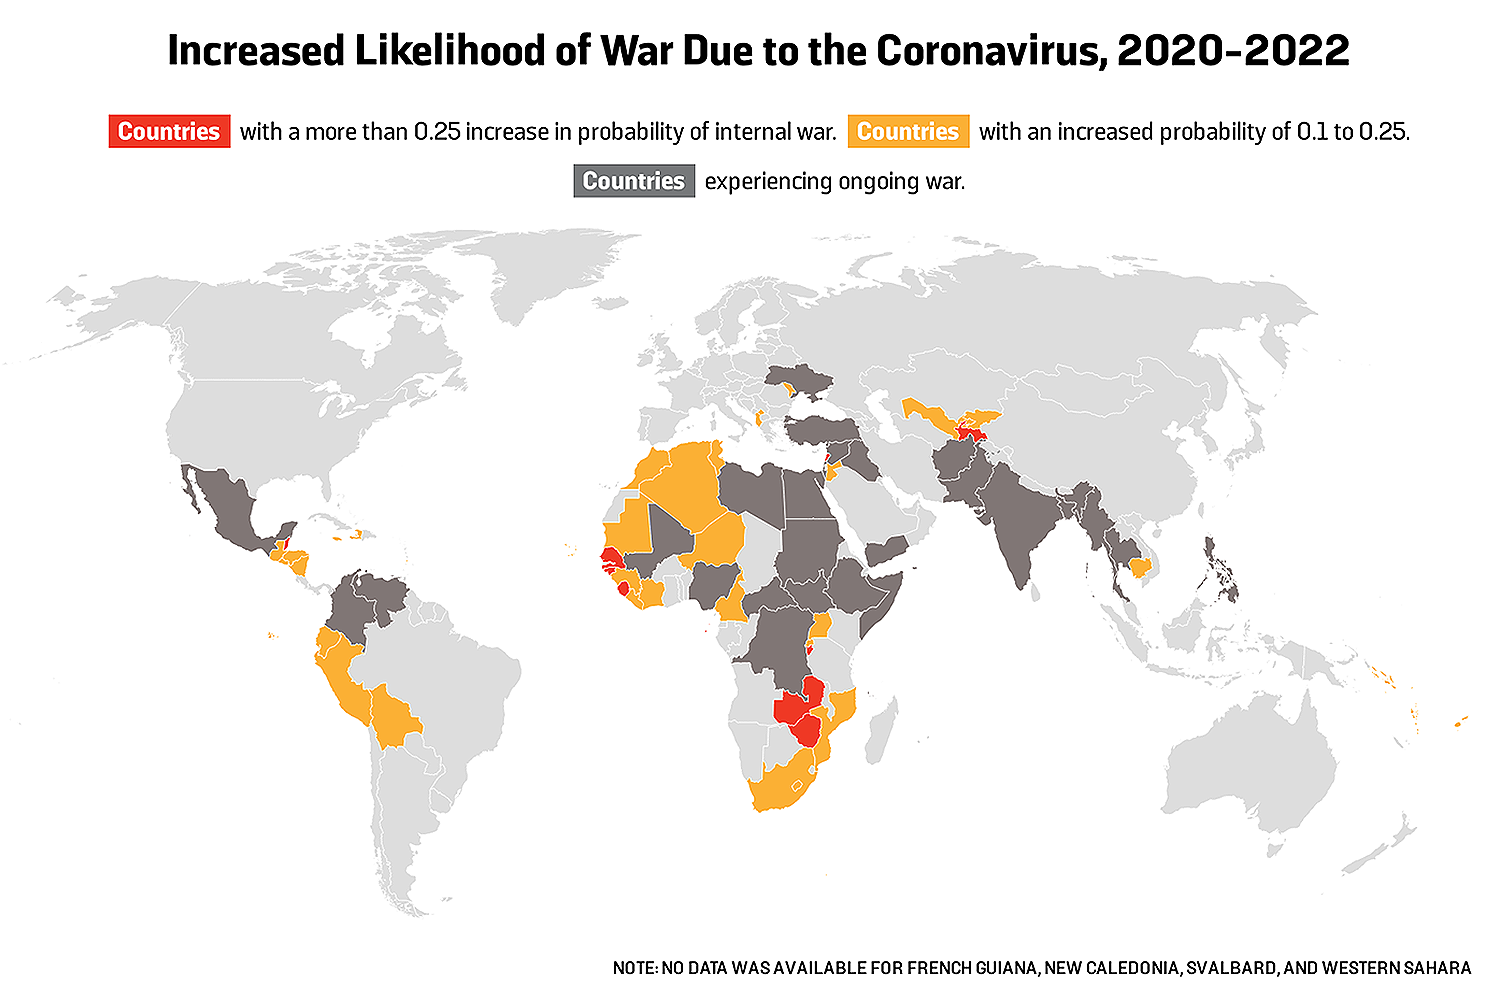 Increased Likelihood of War Due to the Coronavirus, 2020-2022